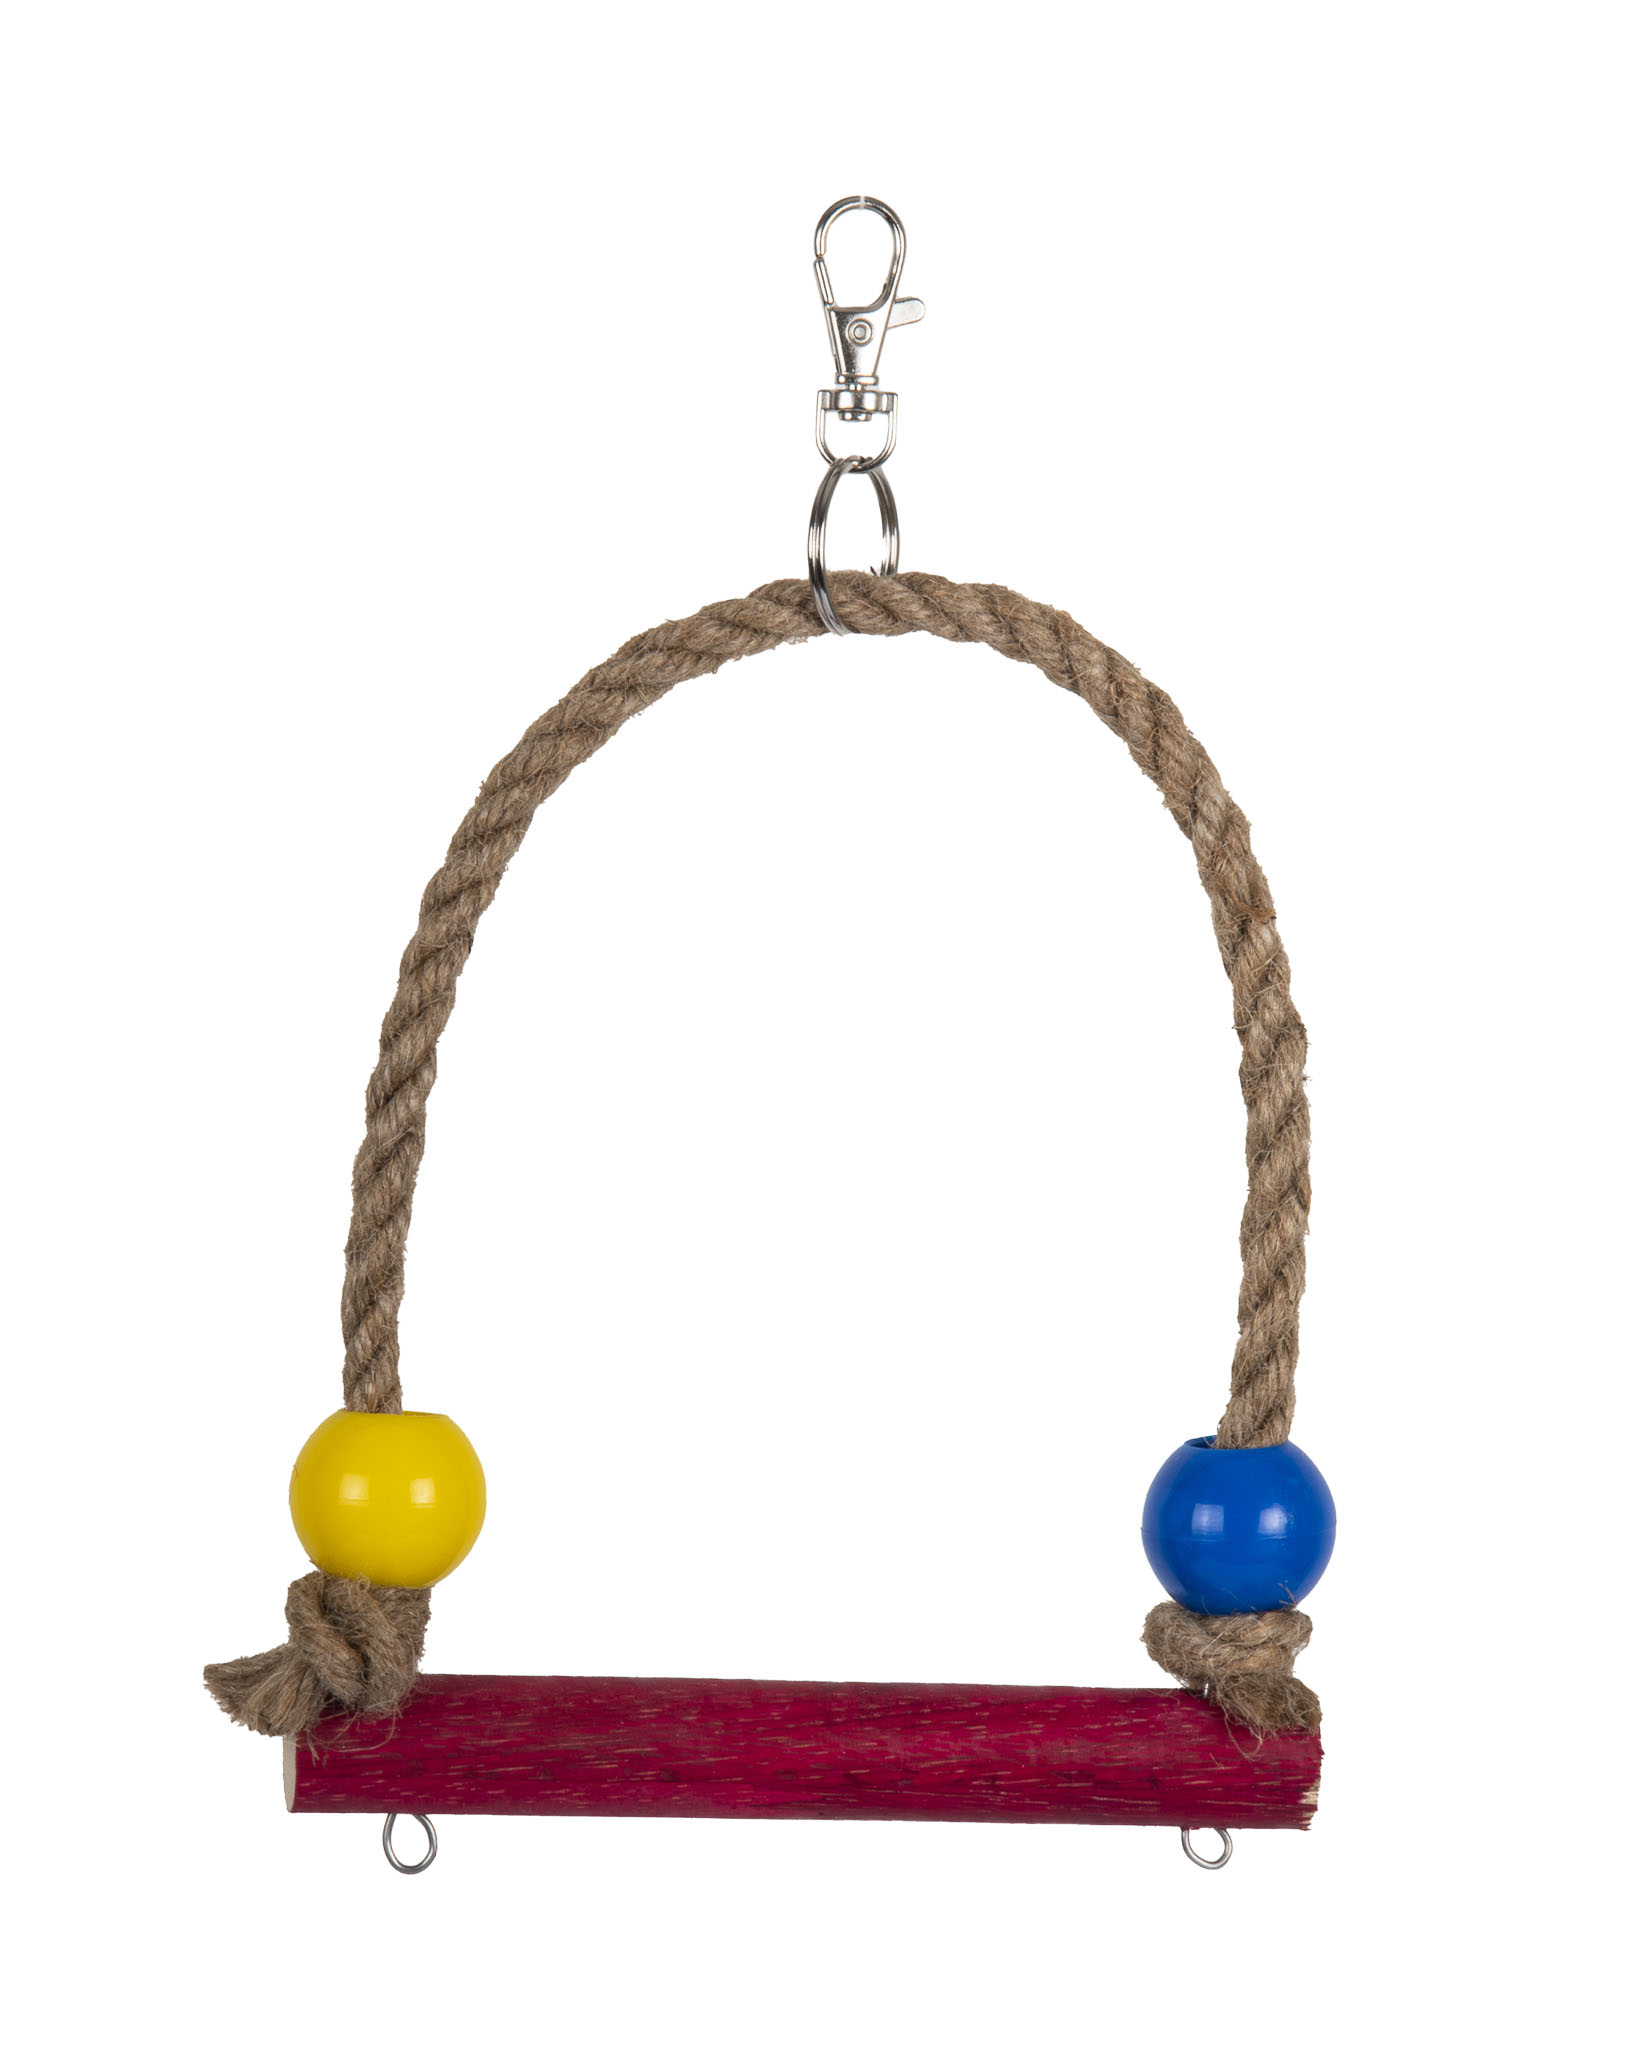 Rope Swing Small